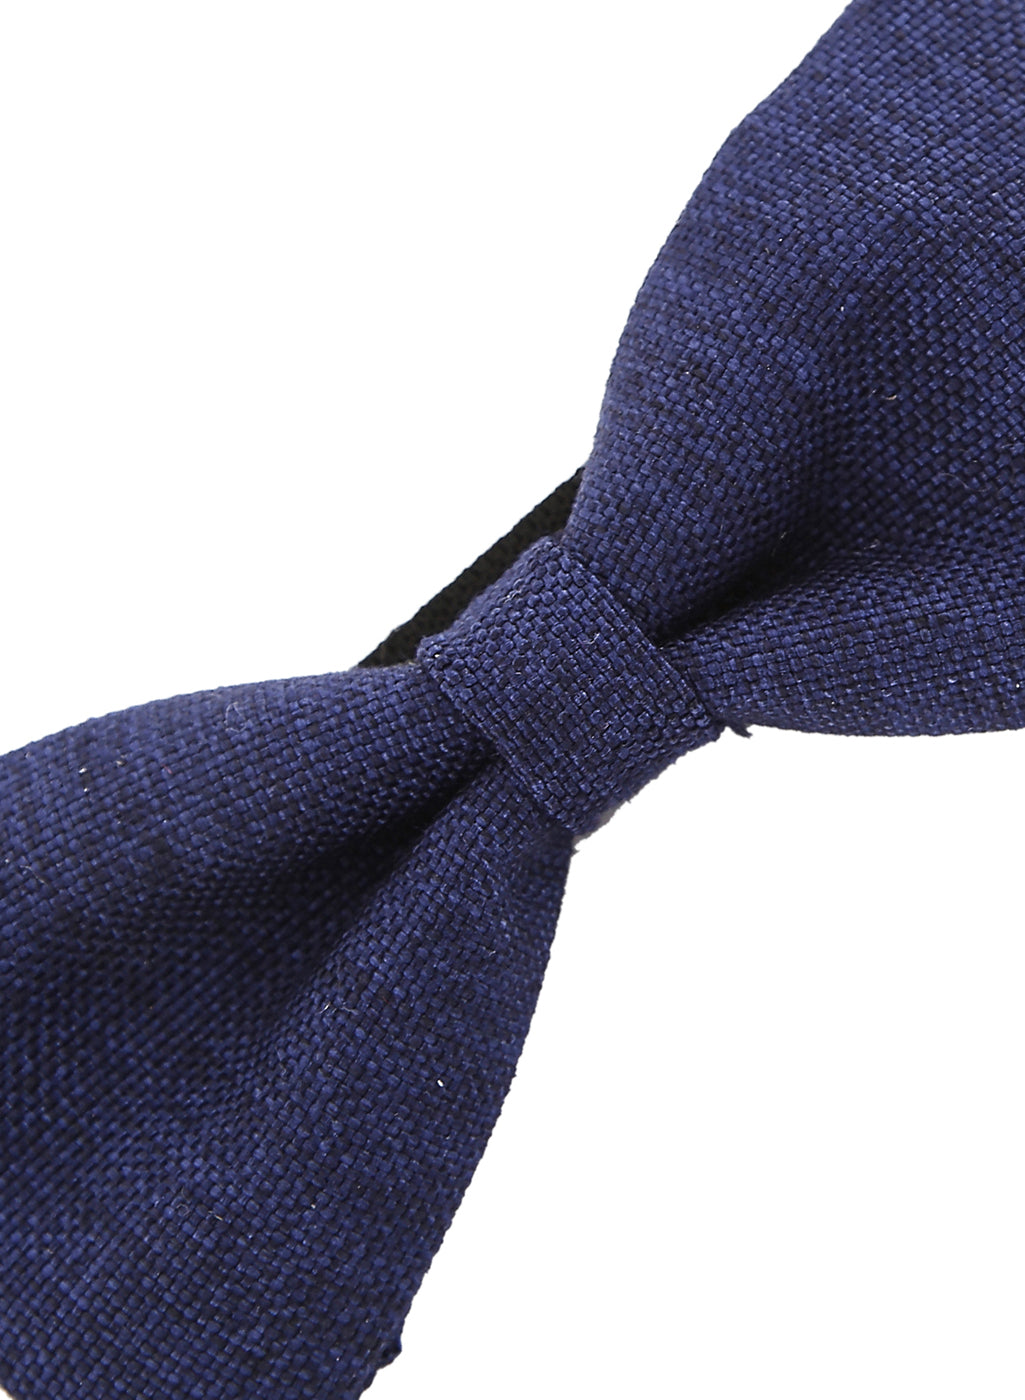 ZIDO Bow Tie for Men BJT013